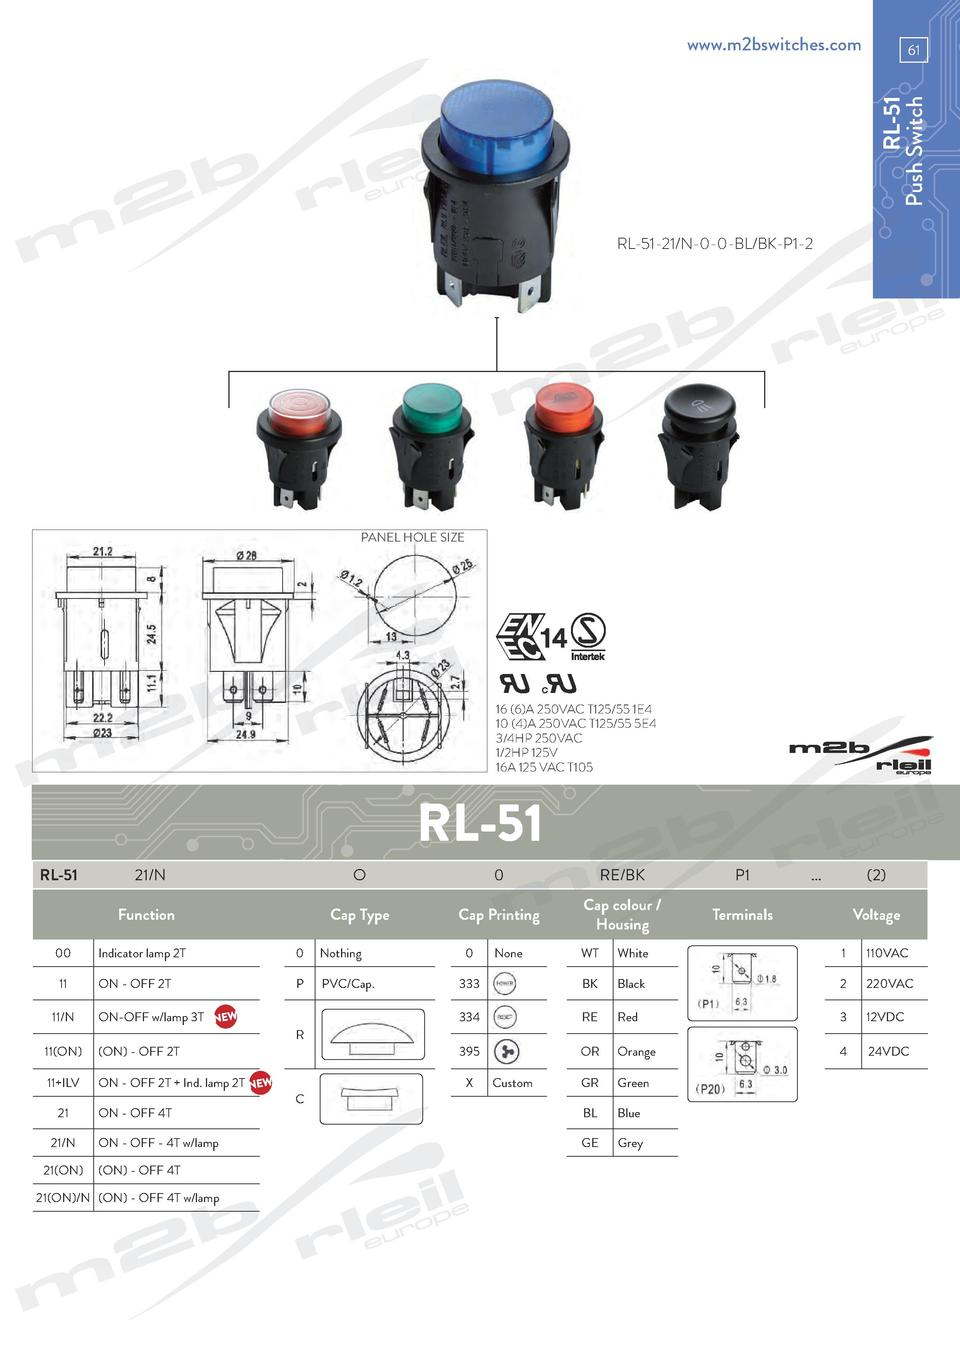 www.m2bswitches.com  RL-51 Push Switch  61  RL-51-21 N-0-0-BL BK-P1-2  PANEL HOLE SIZE  16  6 A 250VAC T125 55 1E4 10  4 A...